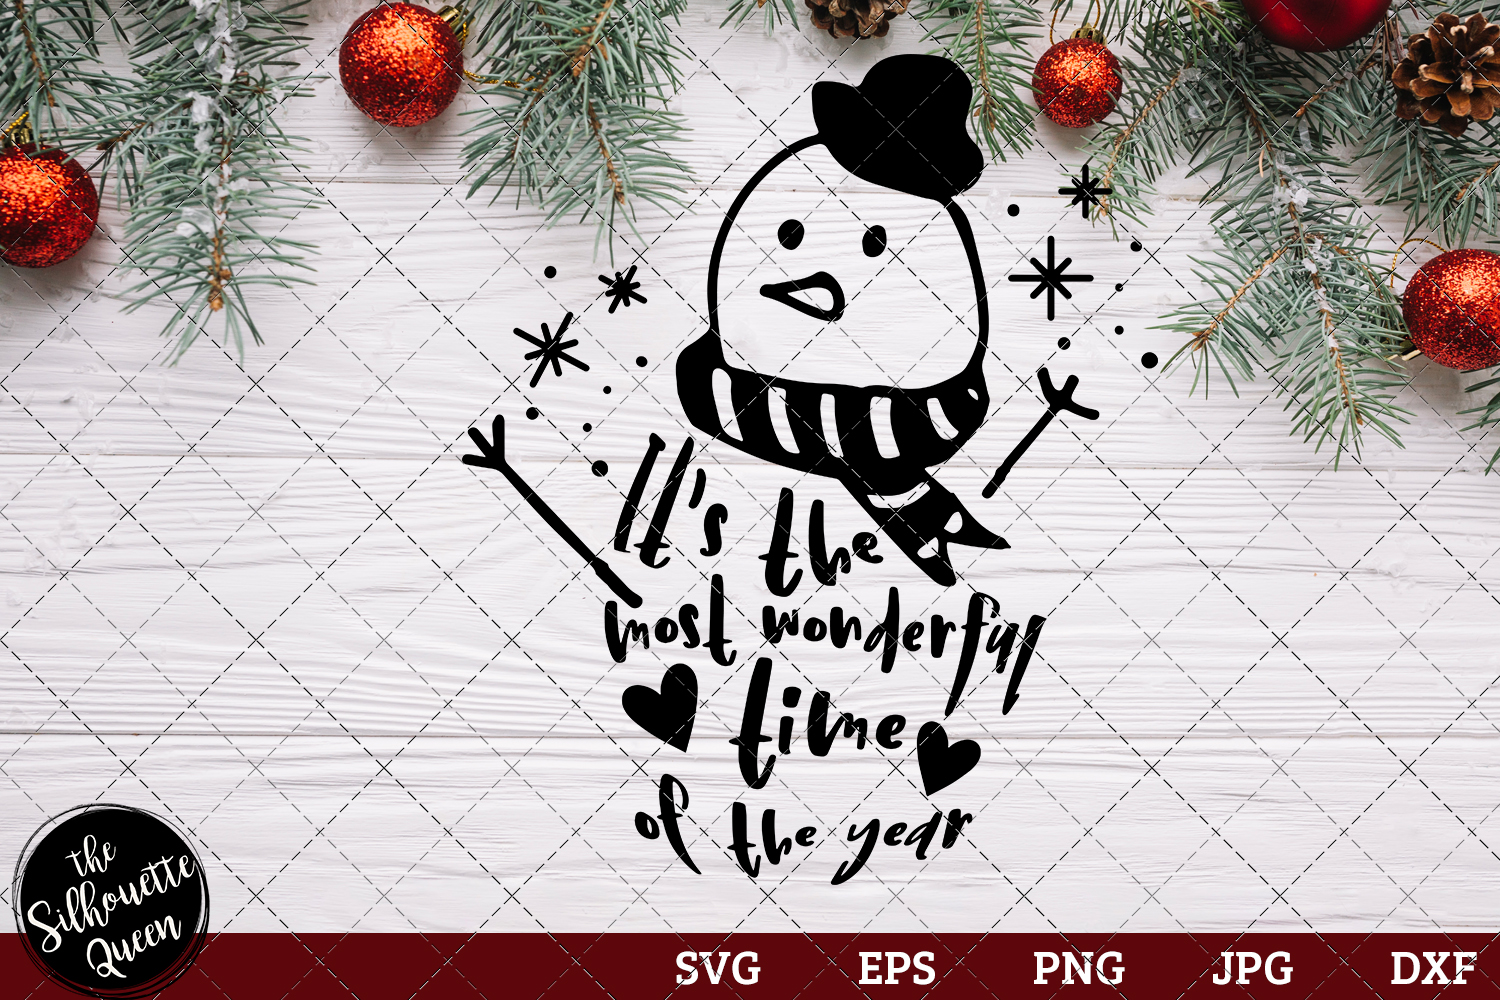 Download Free It S The Most Wonderful Time Of The Year Graphic By for Cricut Explore, Silhouette and other cutting machines.